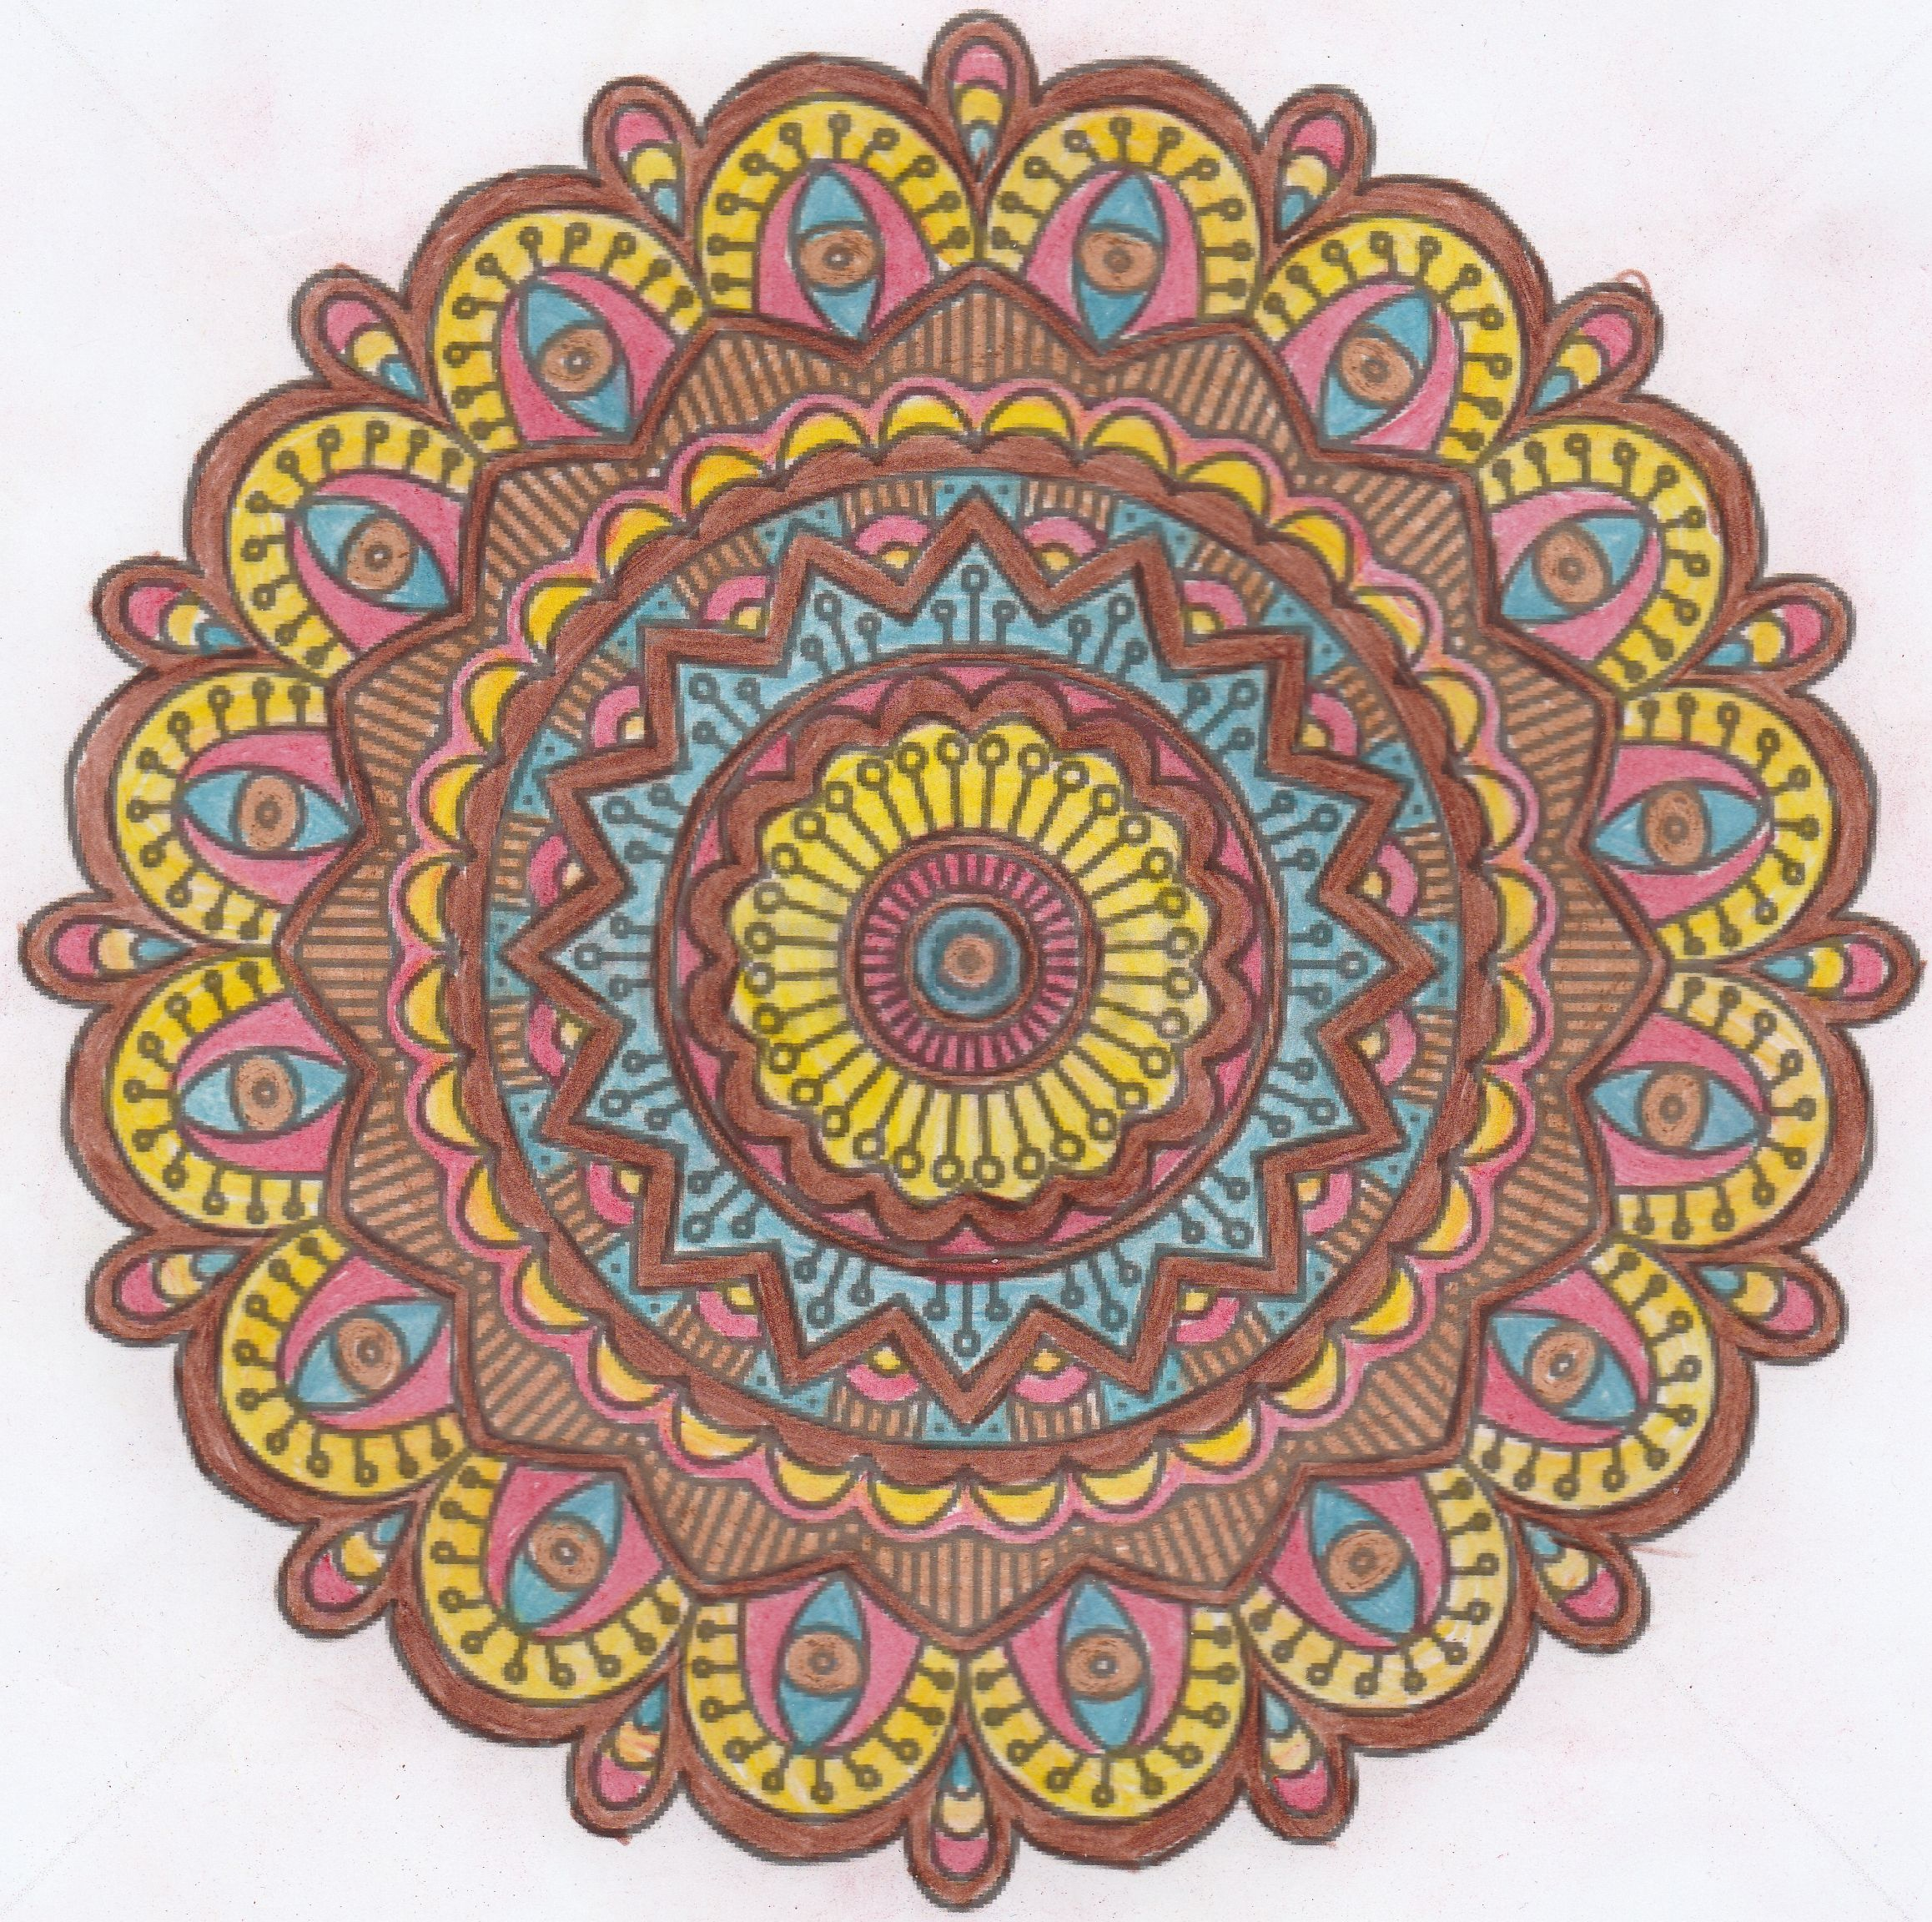 Pin by serm on mandala pinterest mandala mandalas and art